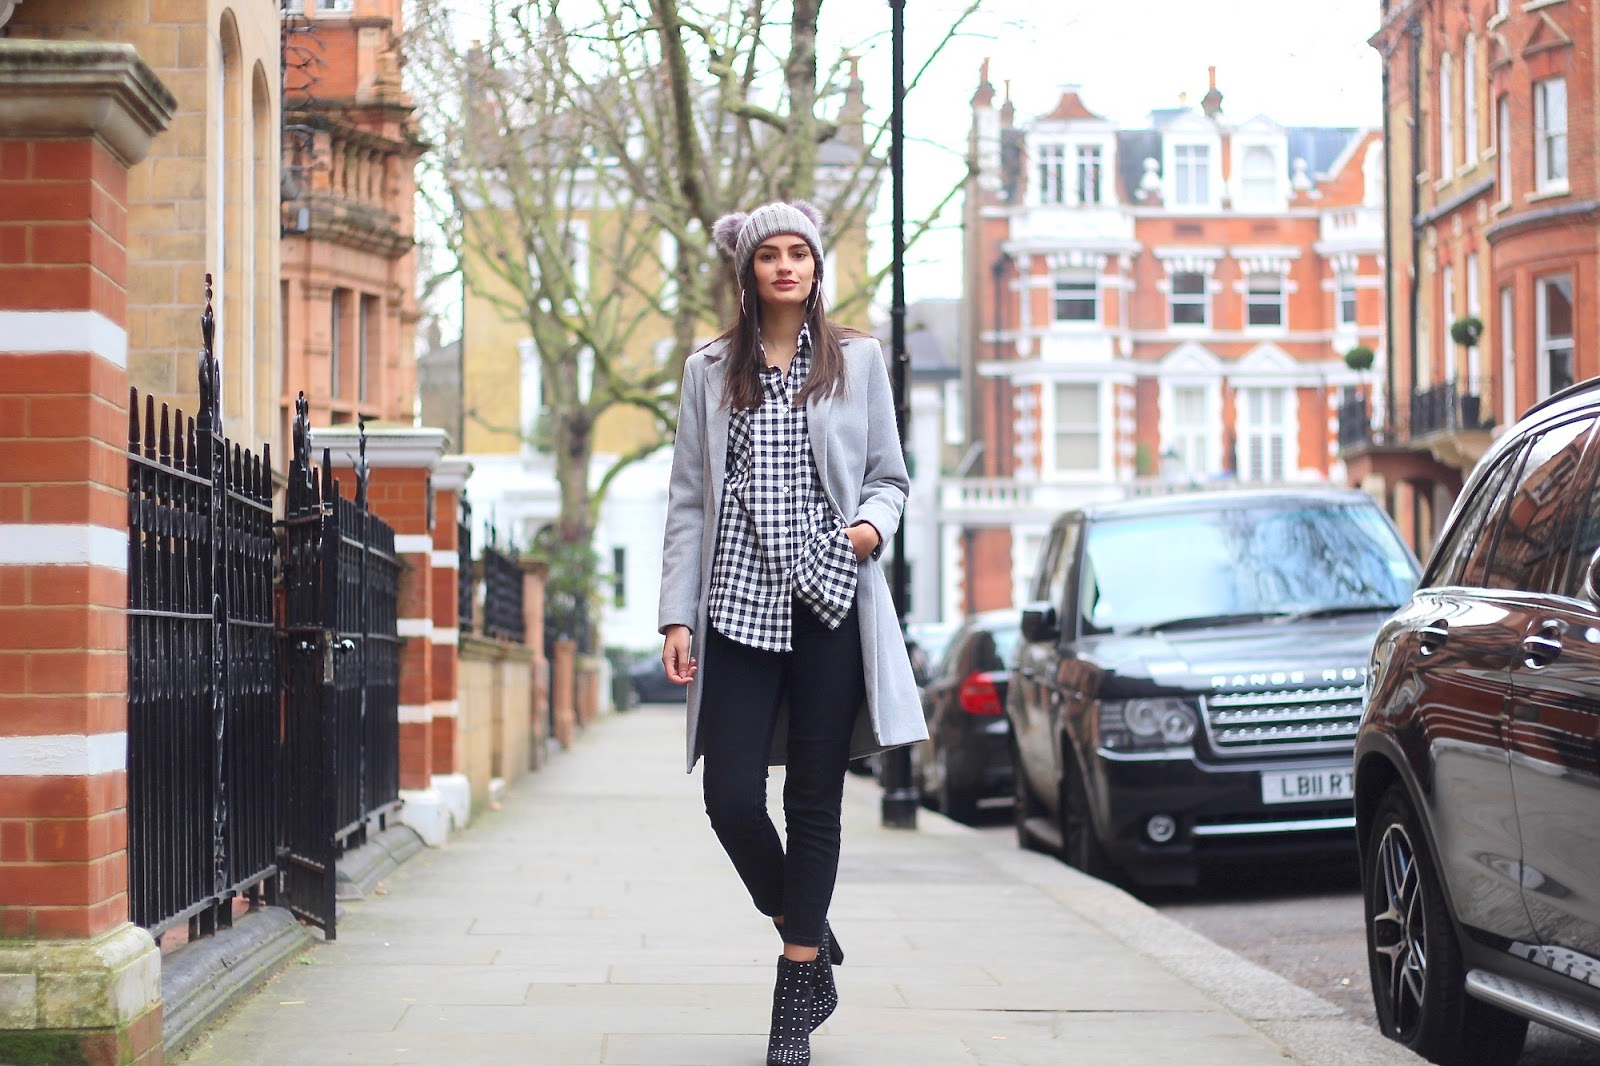 What's Trending Now: Gingham